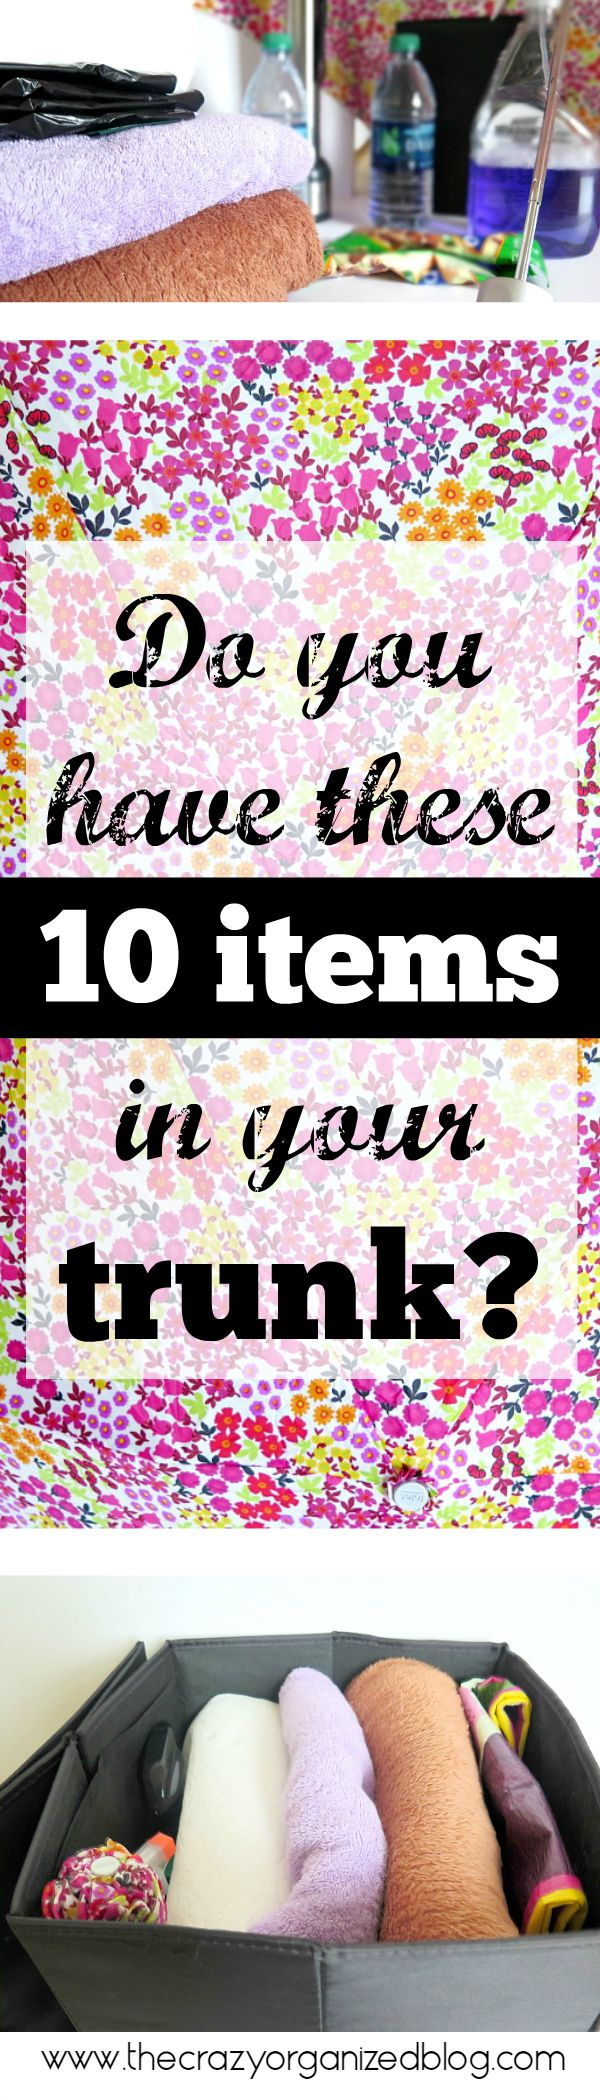 Top 10 Trunk Essentials that you need in your car!